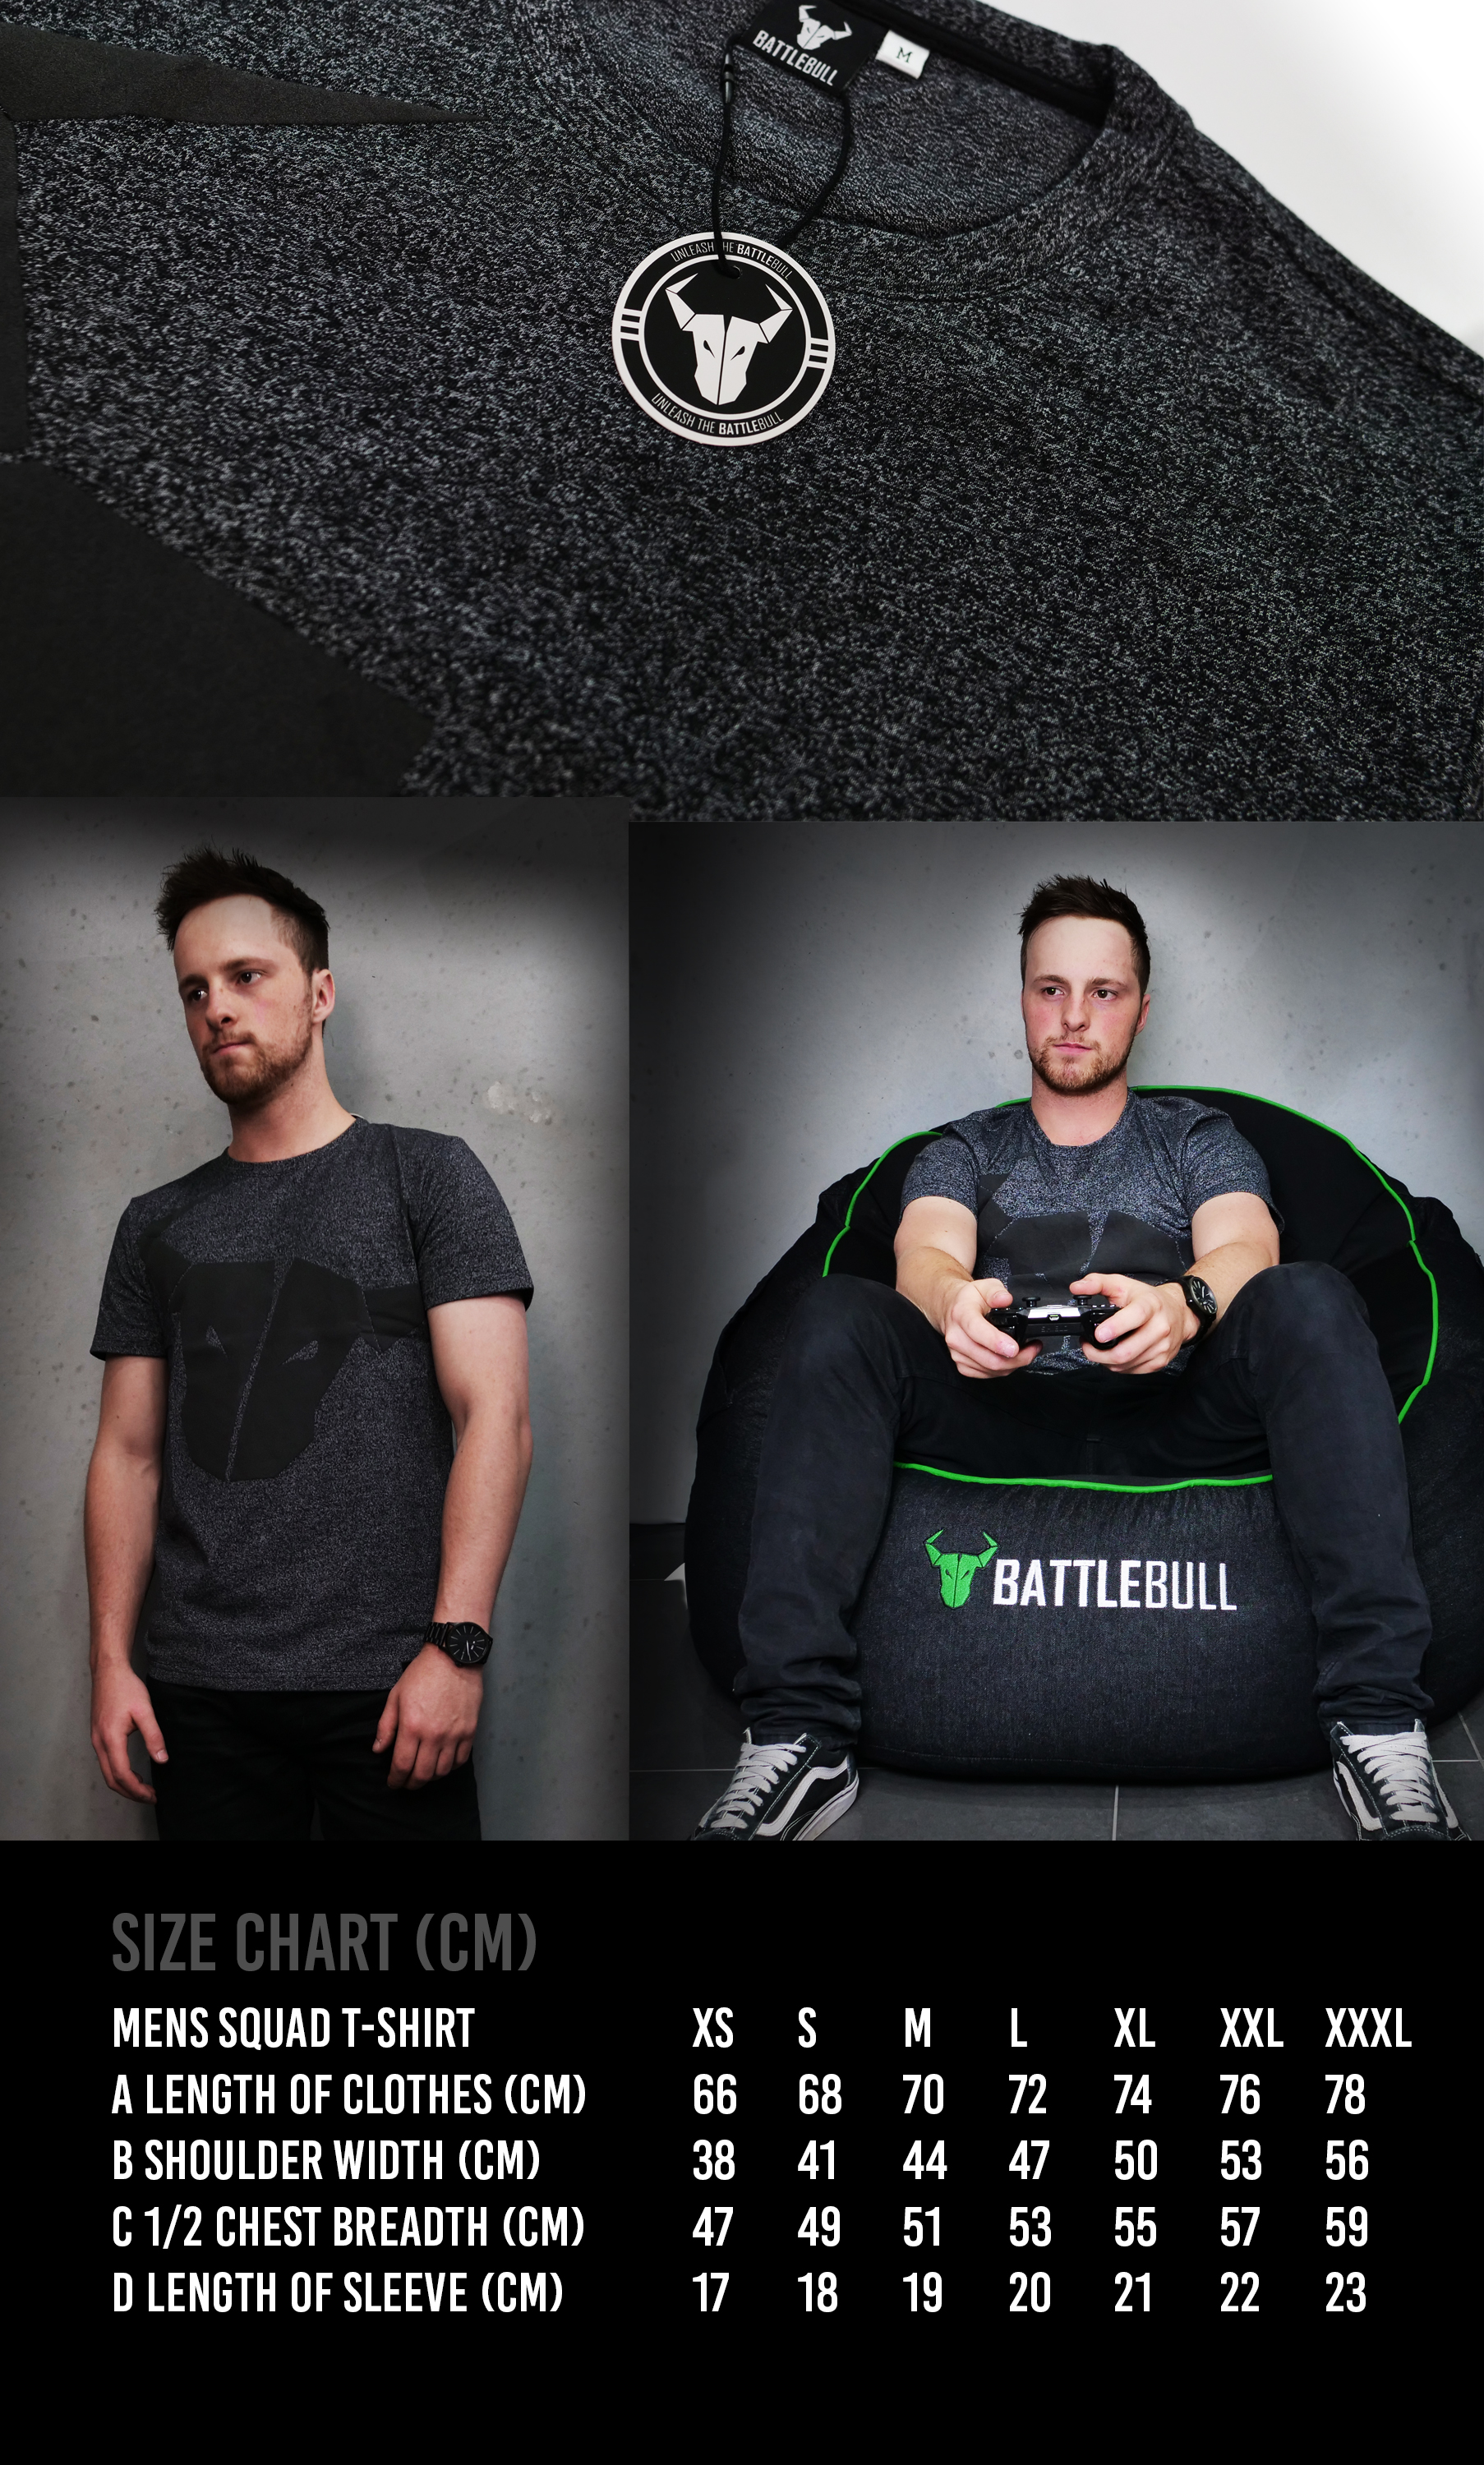 A large marketing image providing additional information about the product BattleBull Squad T-Shirt Black/Black - Size Extra Extra Extra Large (XXXL) - Additional alt info not provided